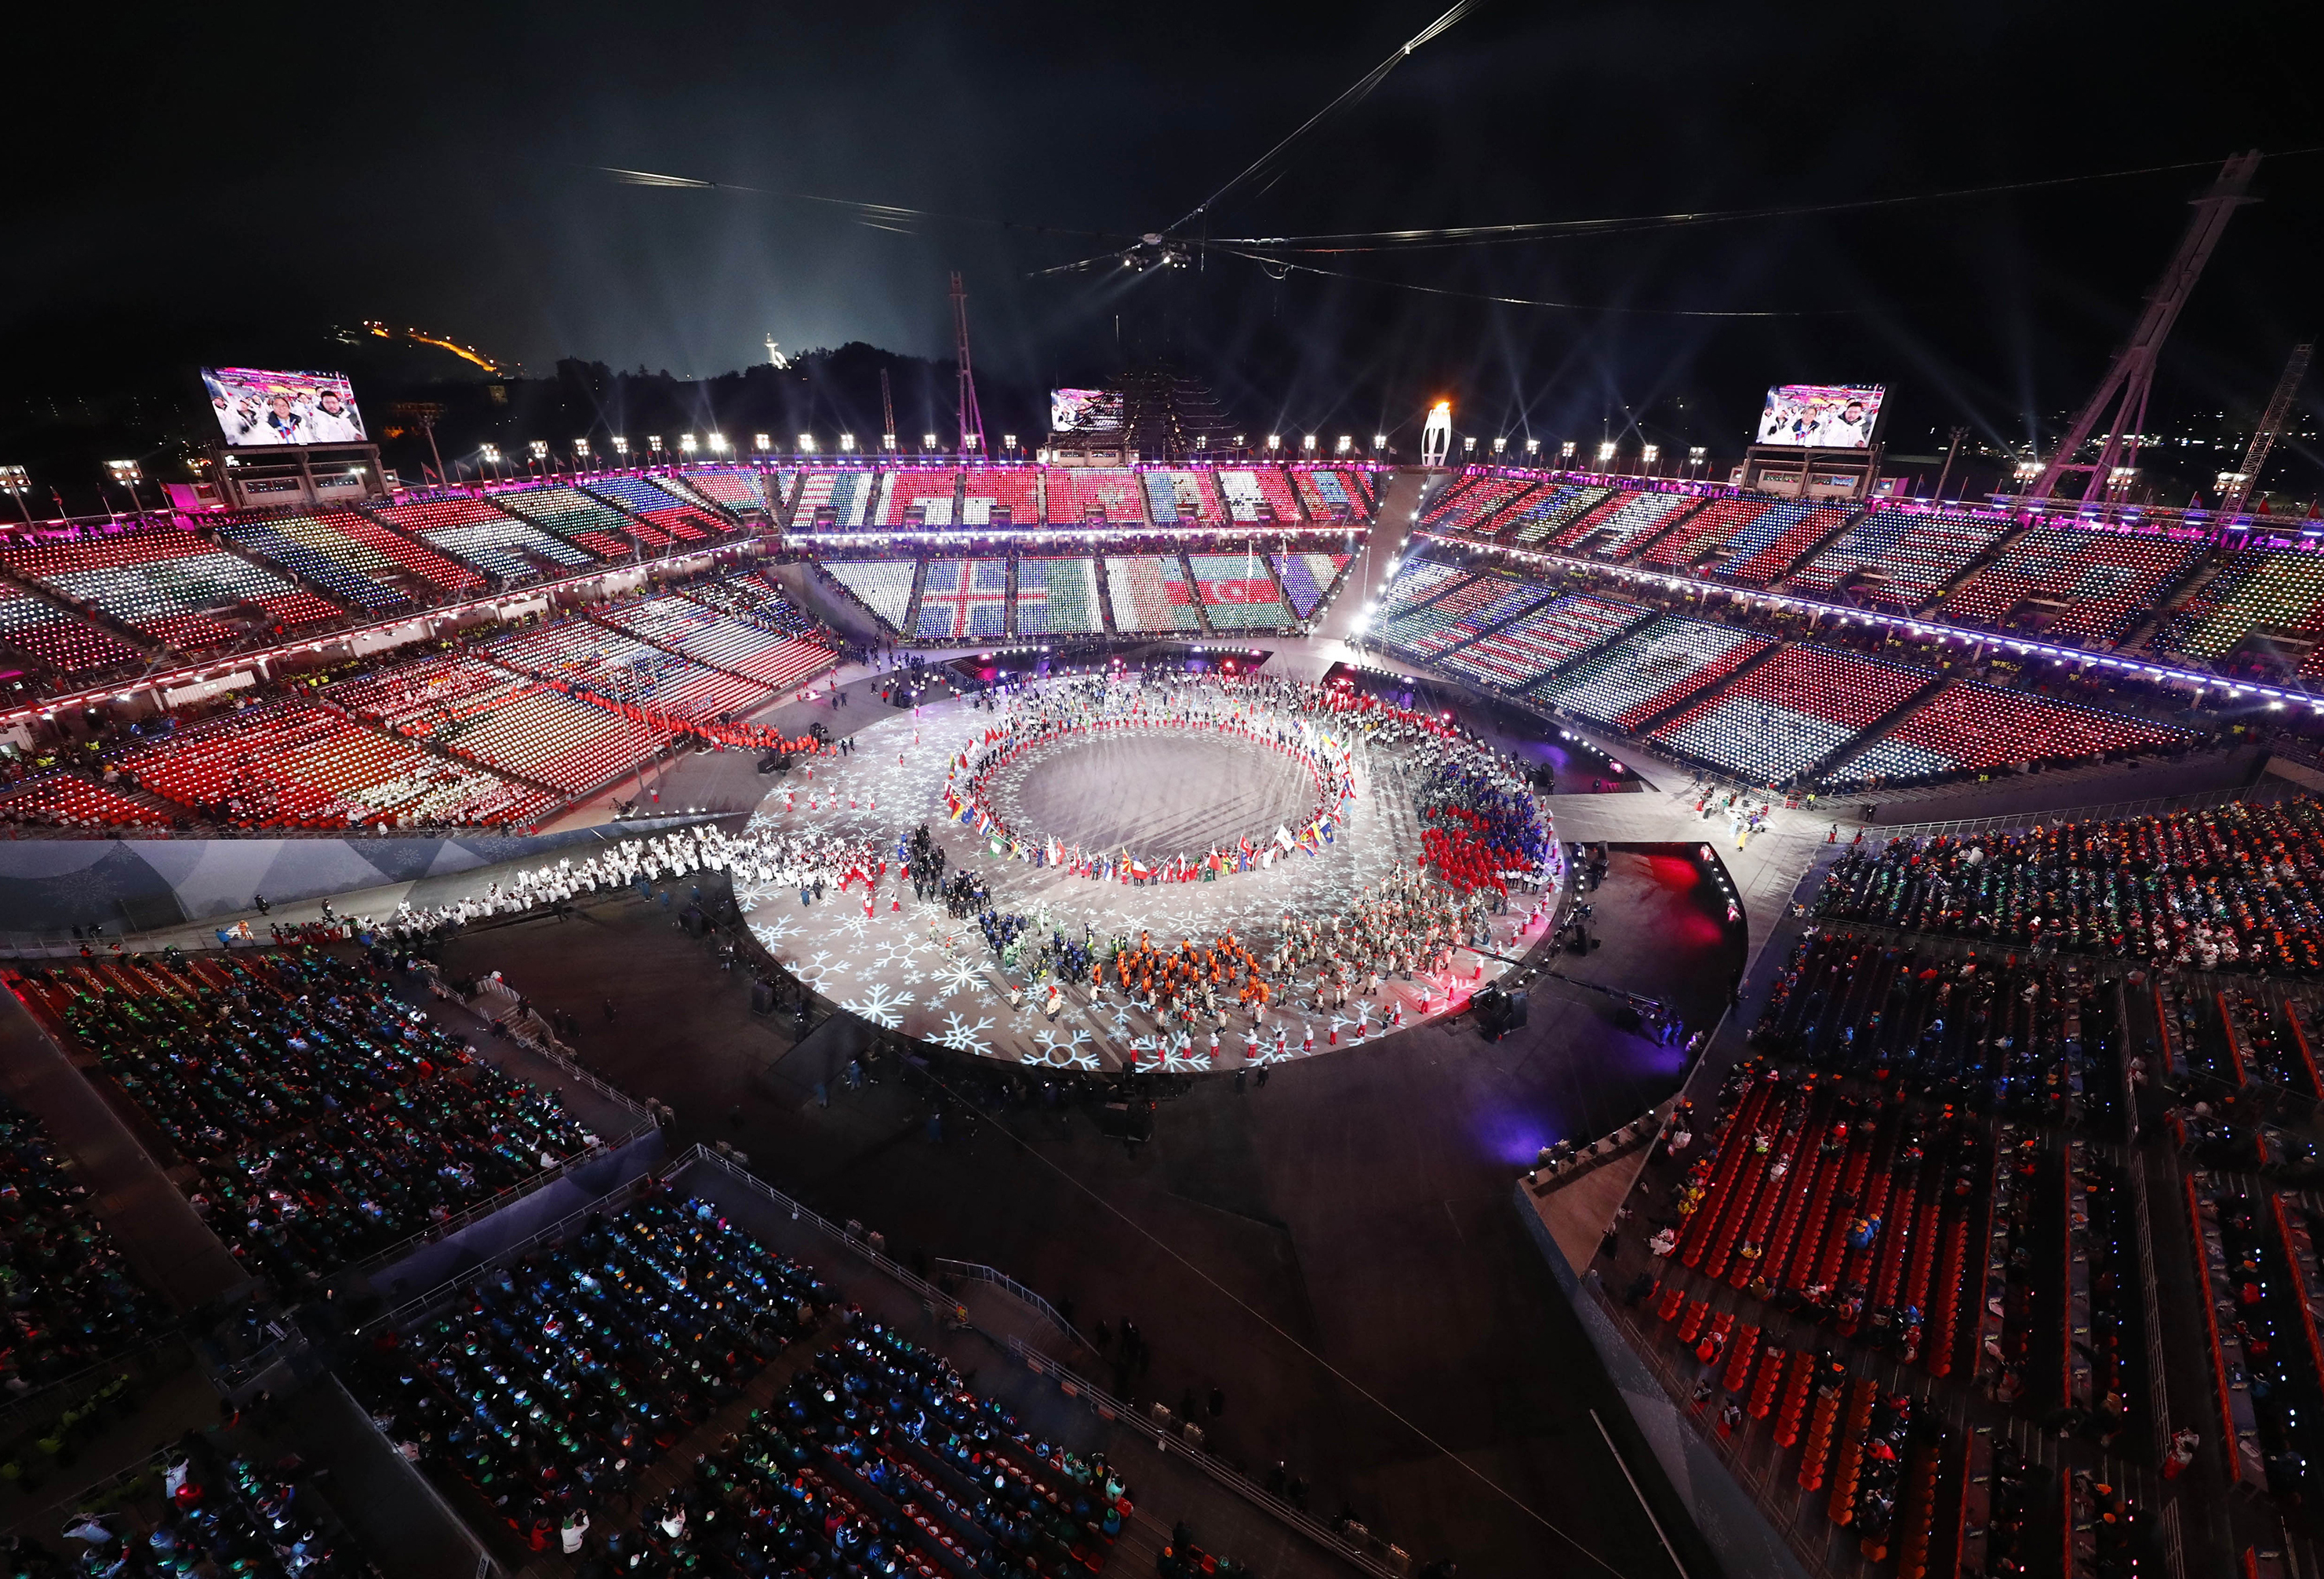 pyeongchang olympics closing ceremony ends biggest winter games ever ncpr news. Black Bedroom Furniture Sets. Home Design Ideas